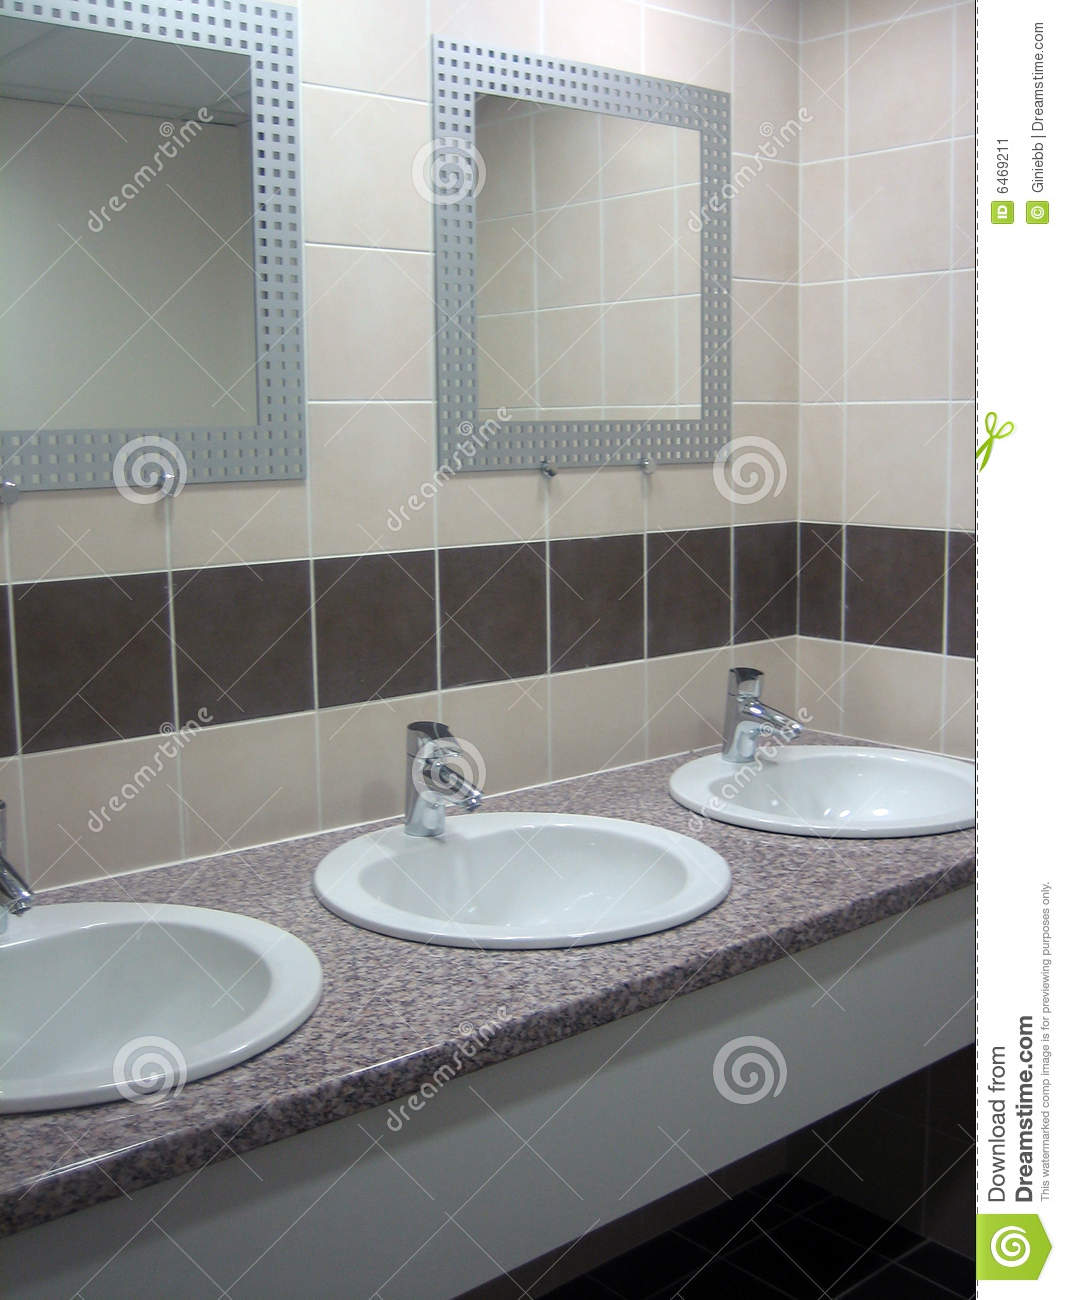 Sinks and mirrors in public restrooms stock photo for Public bathroom sink